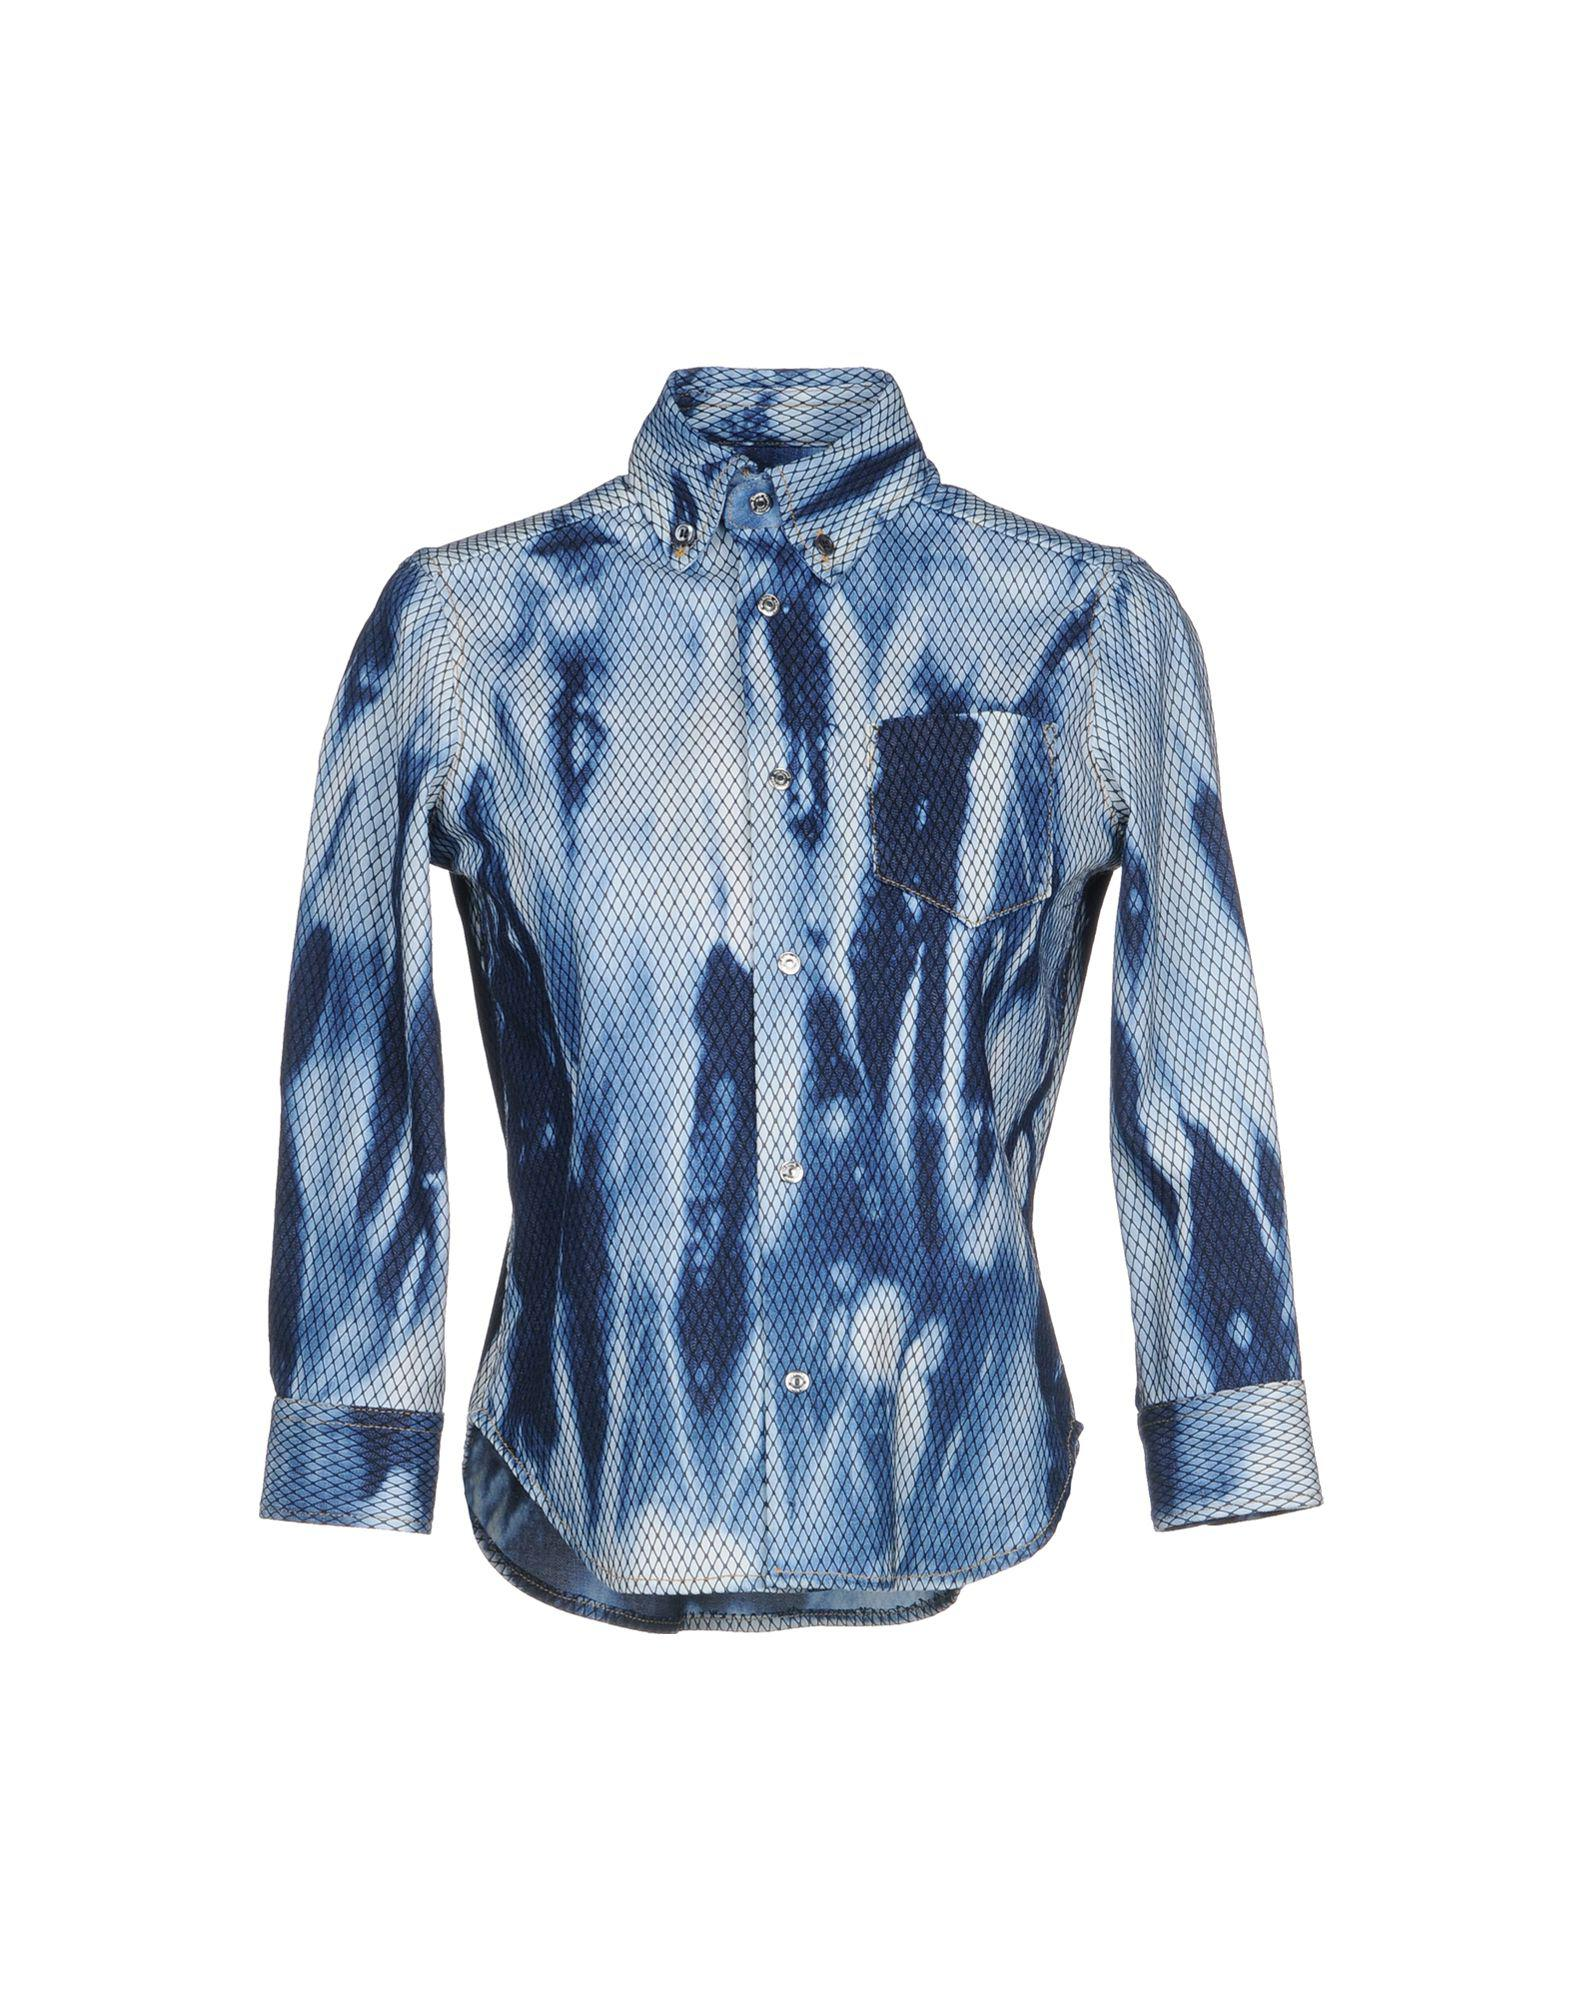 dcdfafea61 Lyst - Dsquared² Denim Shirts in Blue for Men